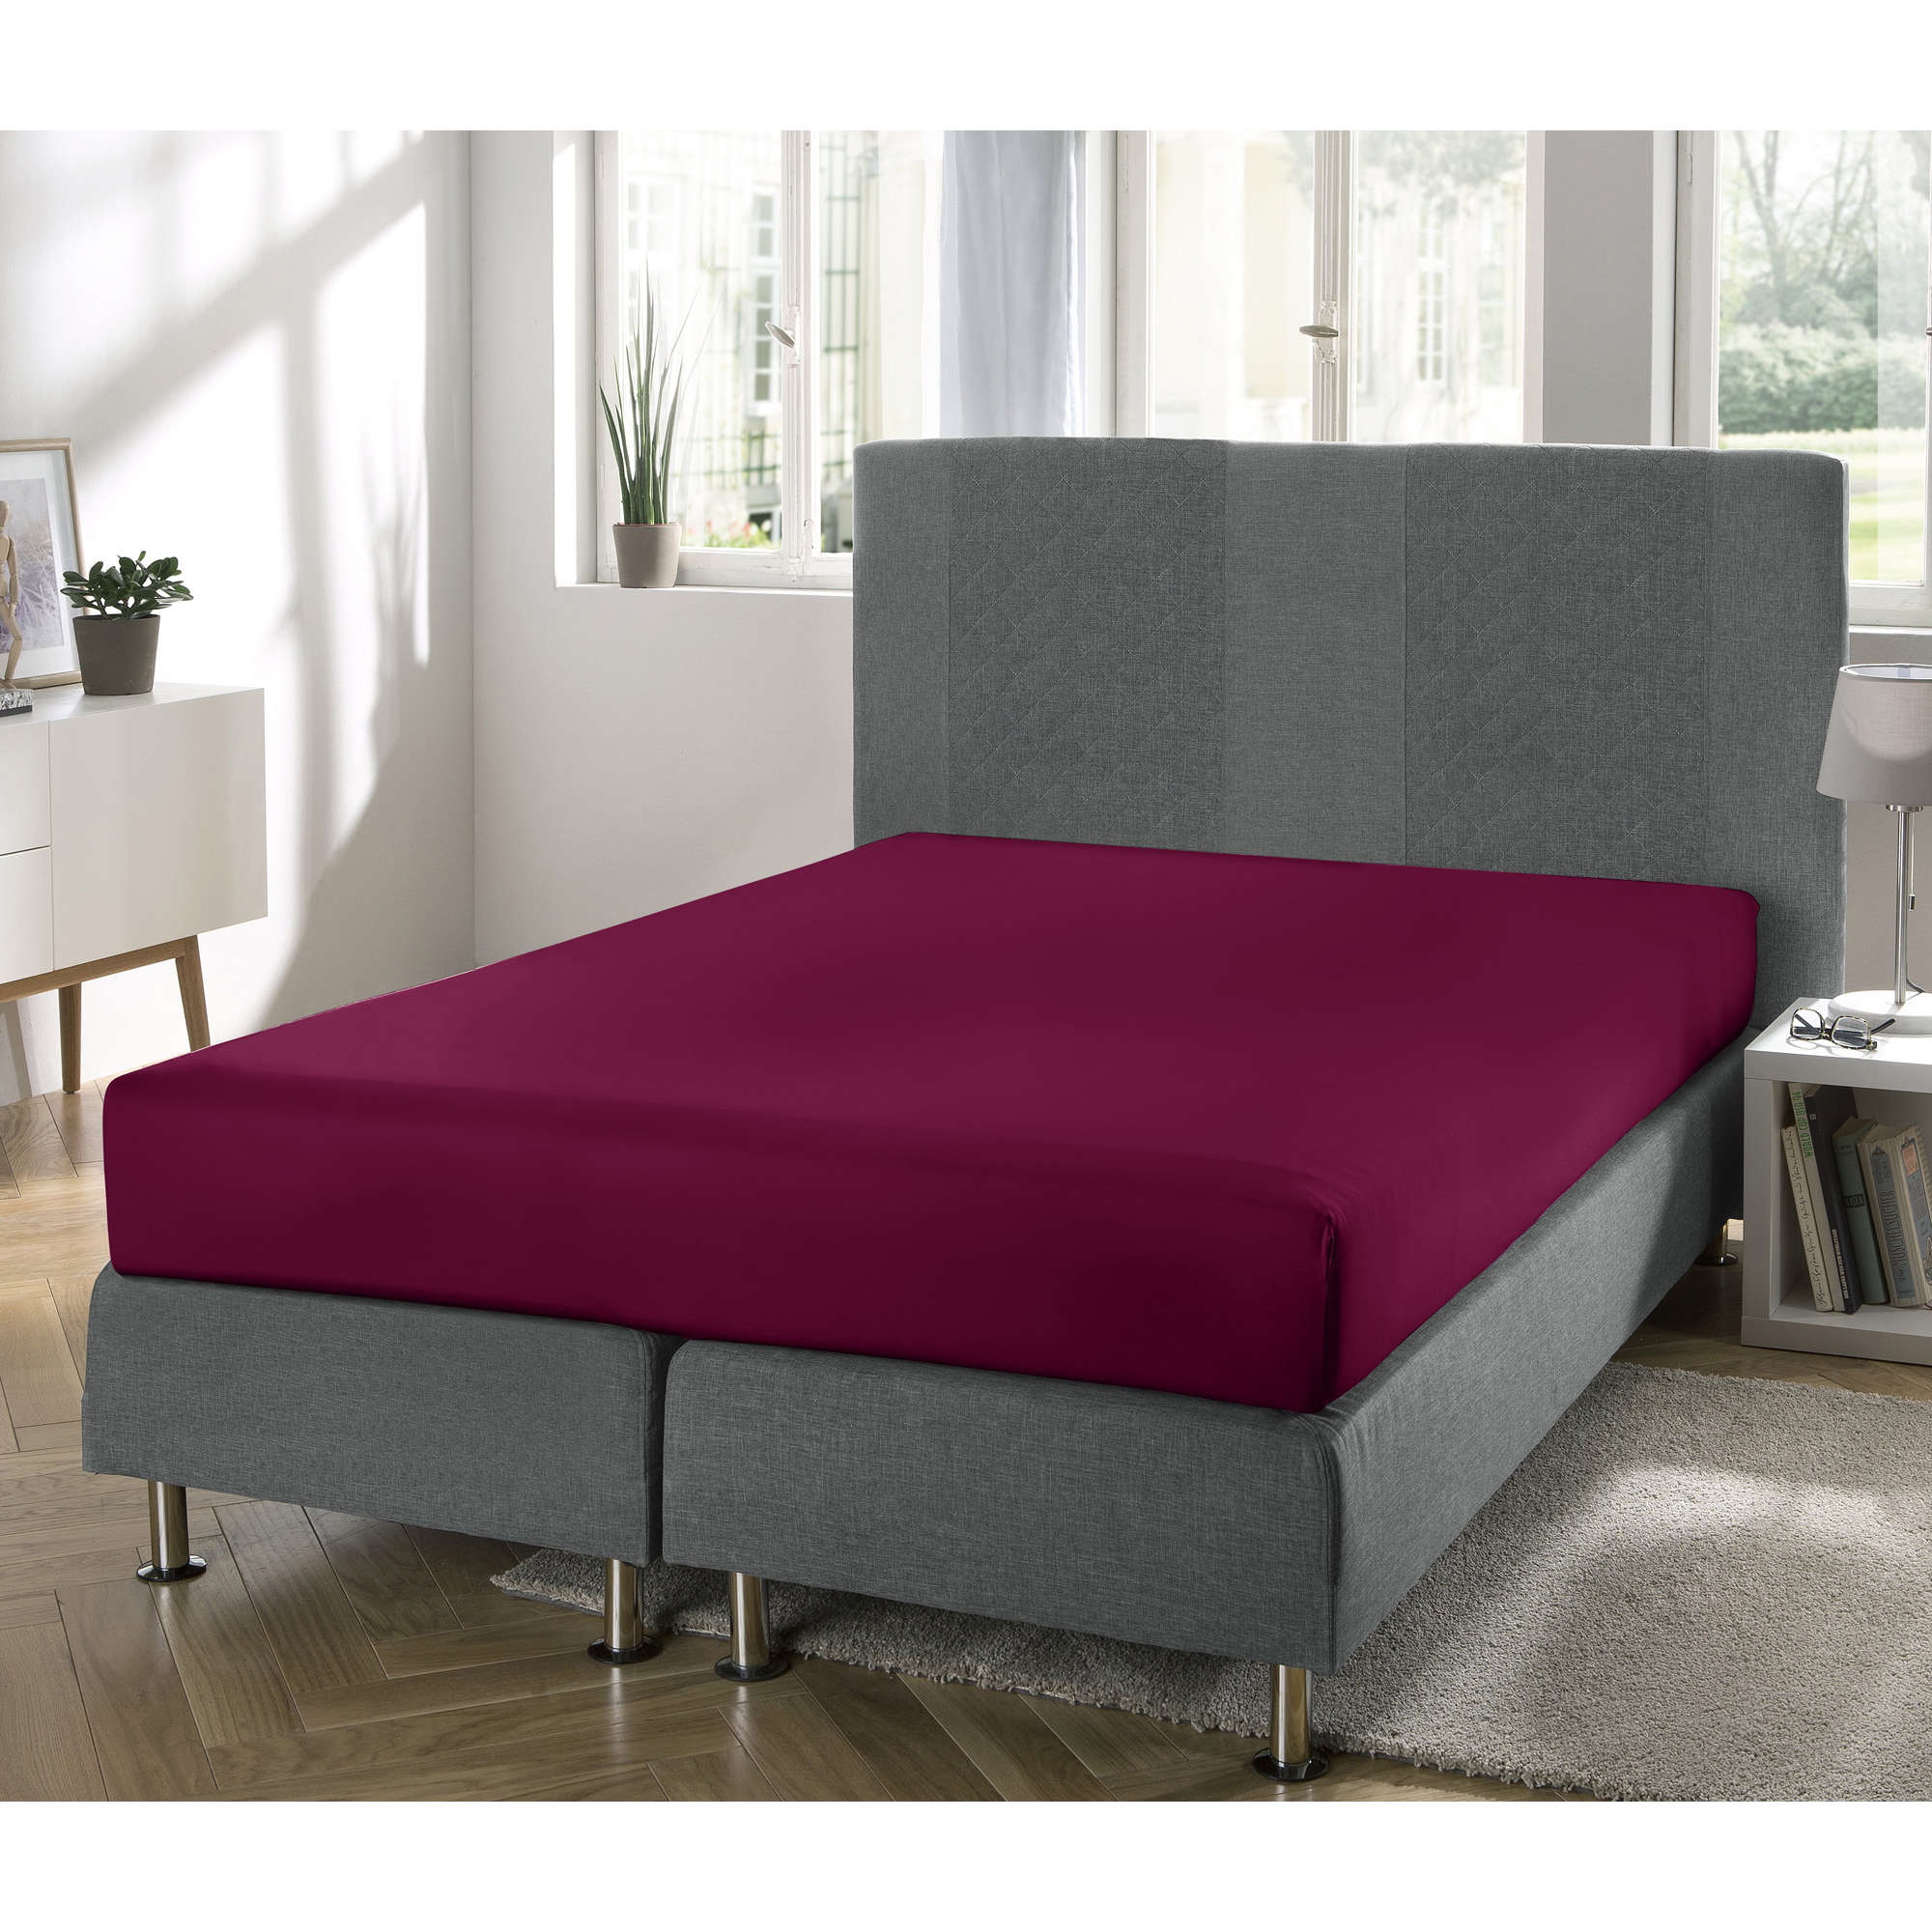 erwin m ller boxspringbett spannbettlaken freising single jersey ebay. Black Bedroom Furniture Sets. Home Design Ideas